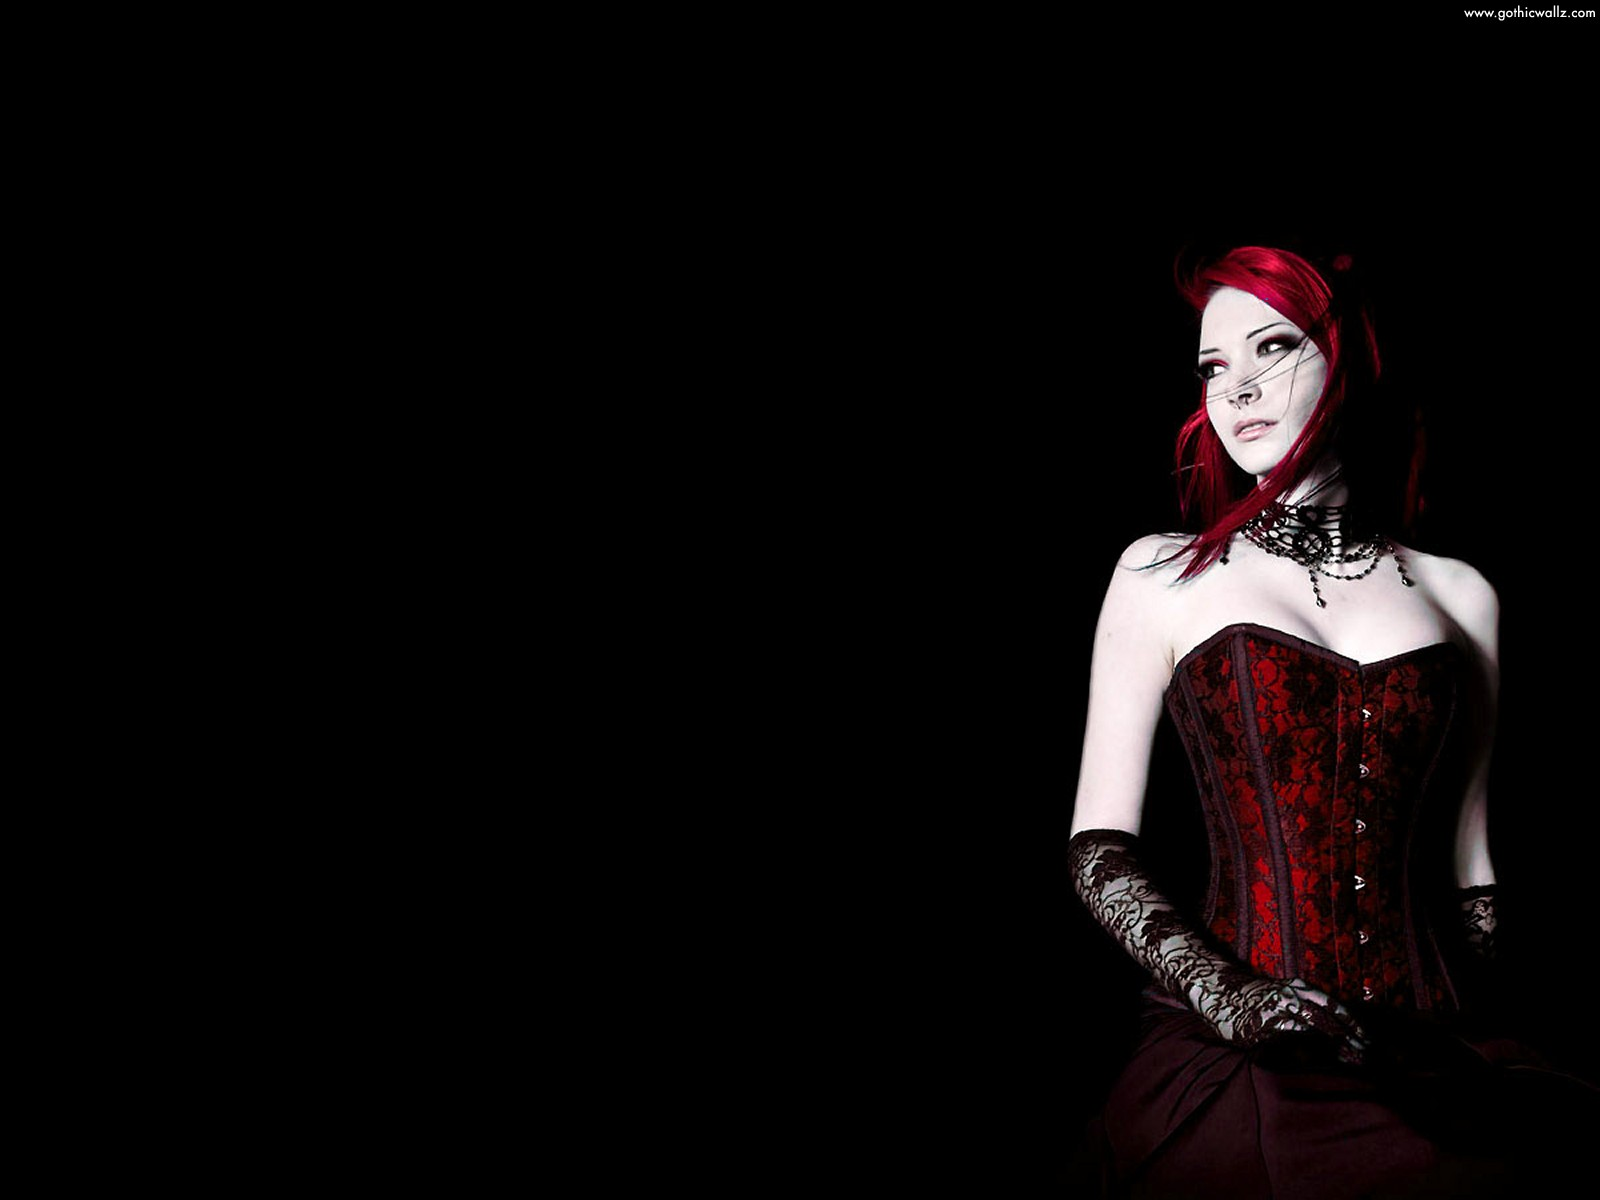 Gothic Girl Wallpaper   Red Gothic Girl Wallpaper Scary Wallpapers 1600x1200